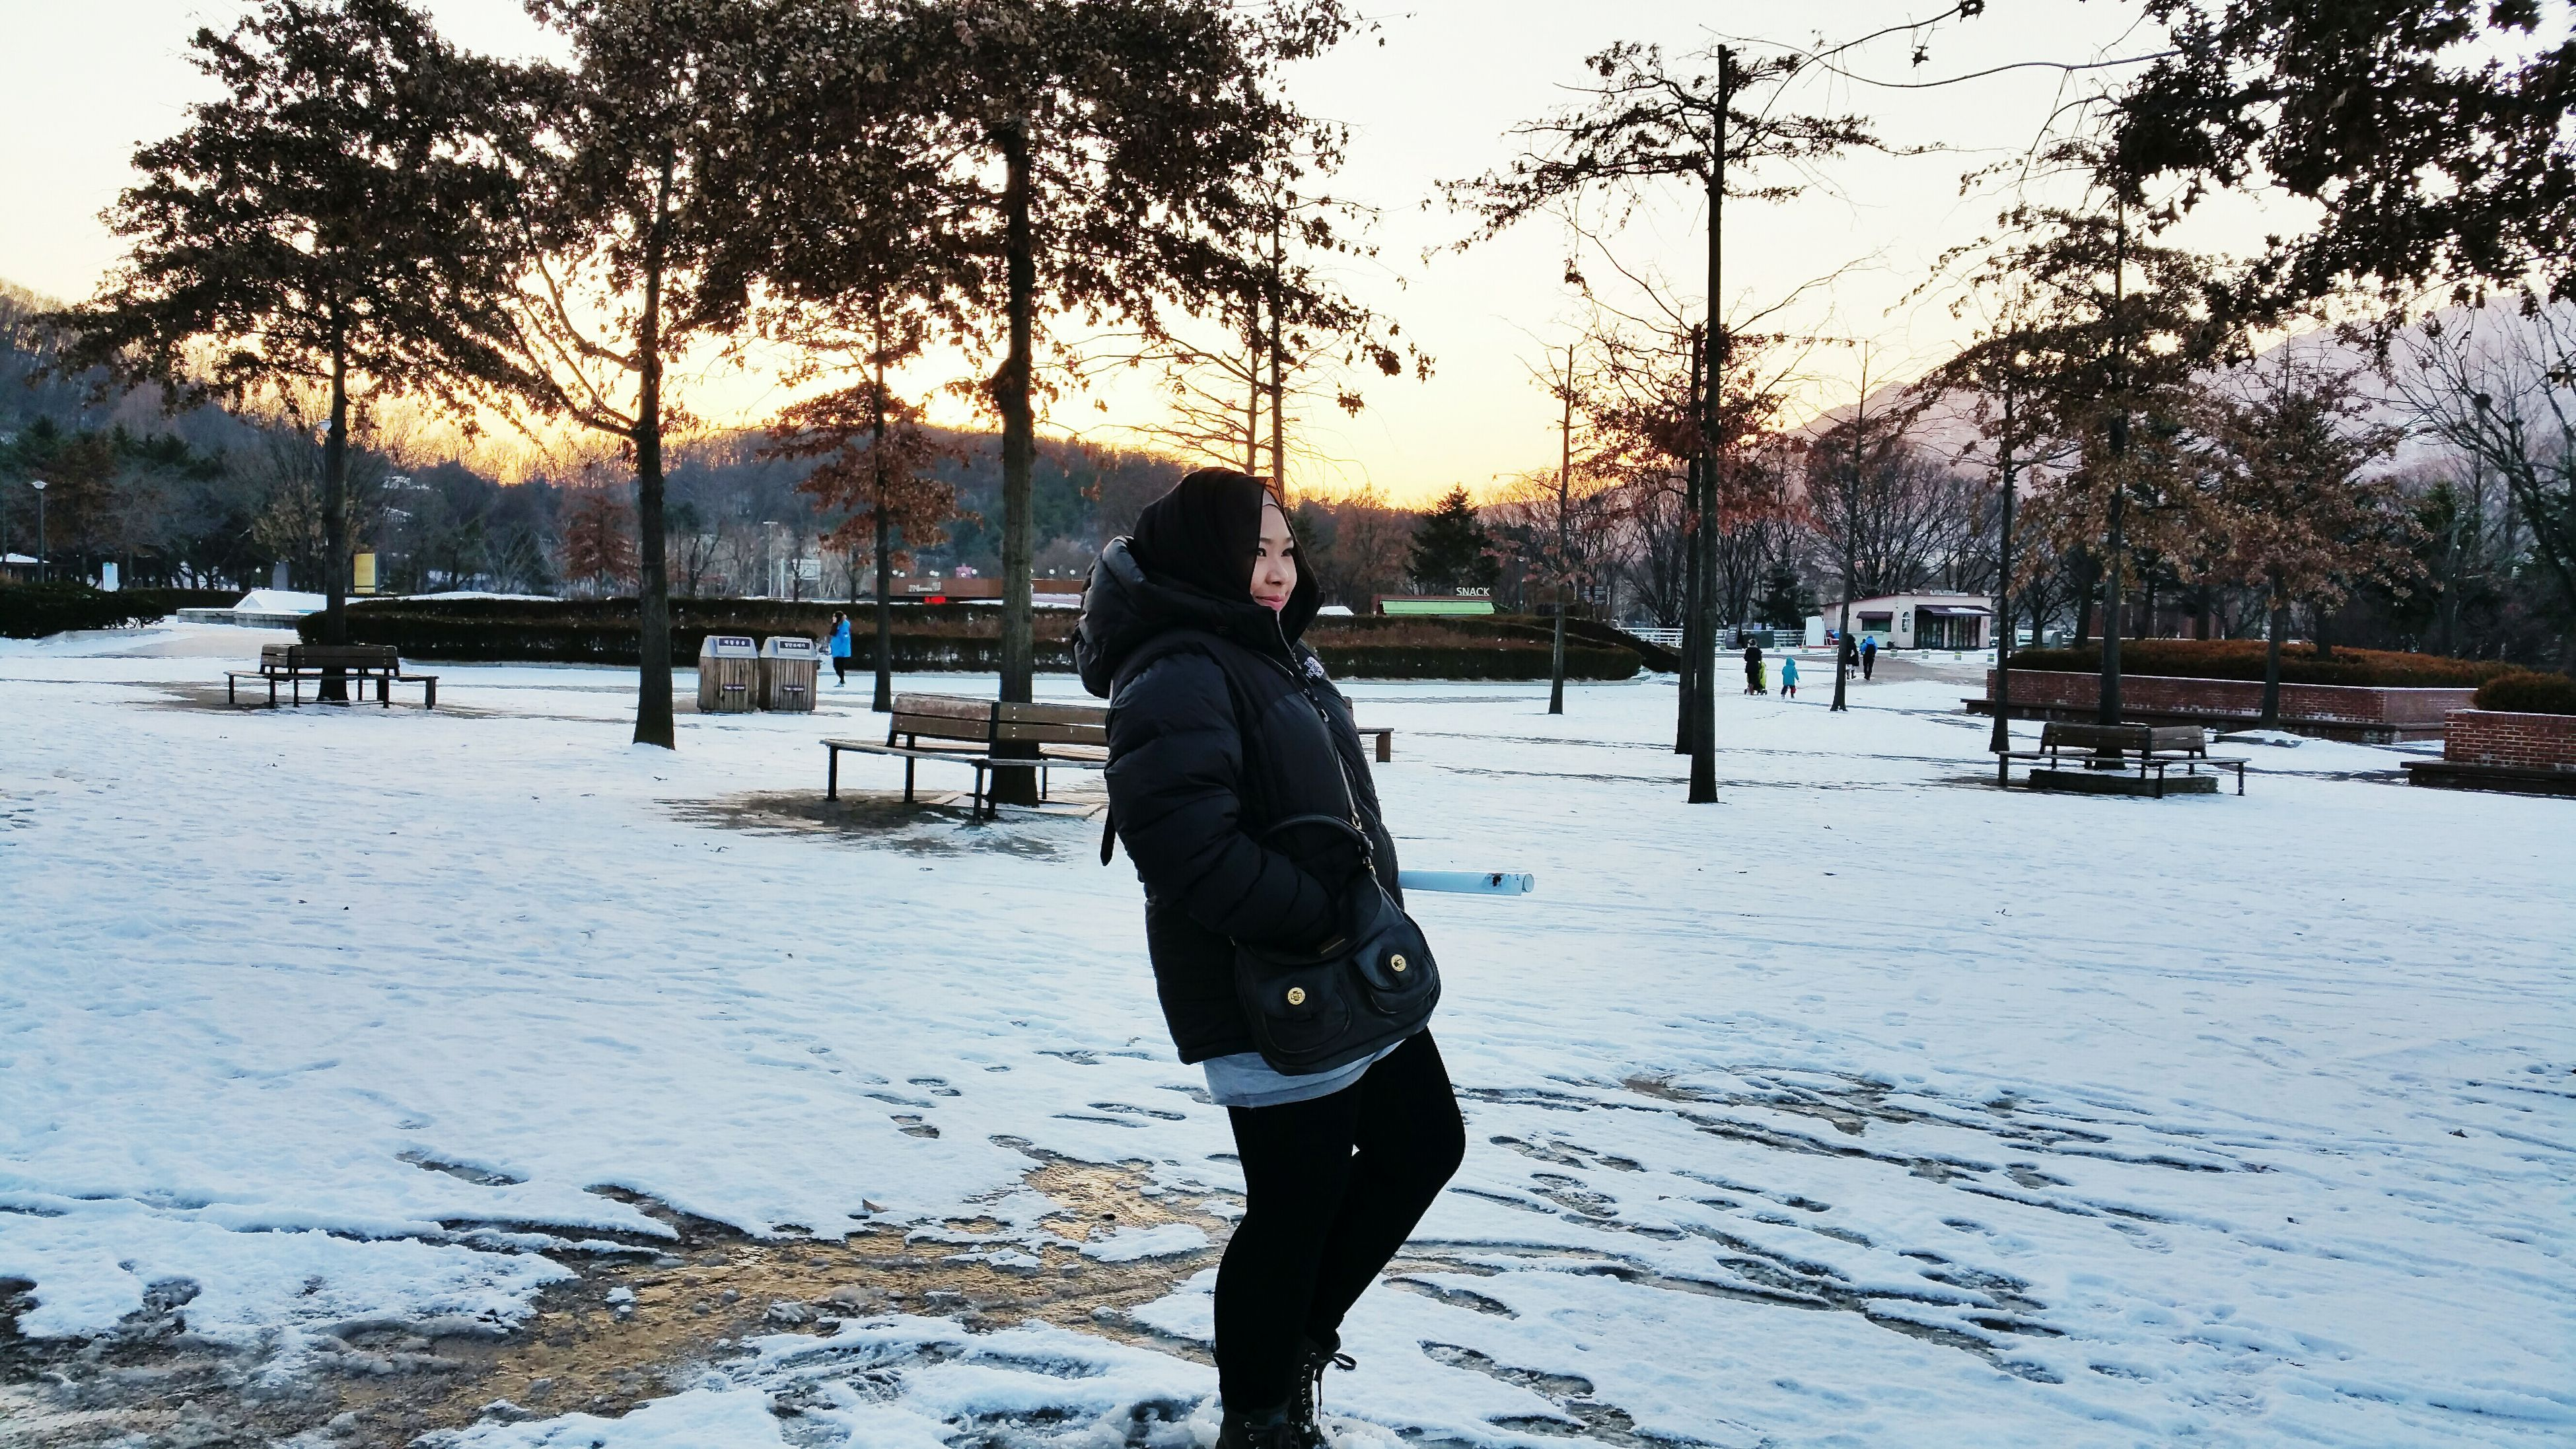 snow, winter, cold temperature, season, weather, lifestyles, rear view, leisure activity, frozen, tree, sunset, warm clothing, covering, standing, full length, men, nature, walking